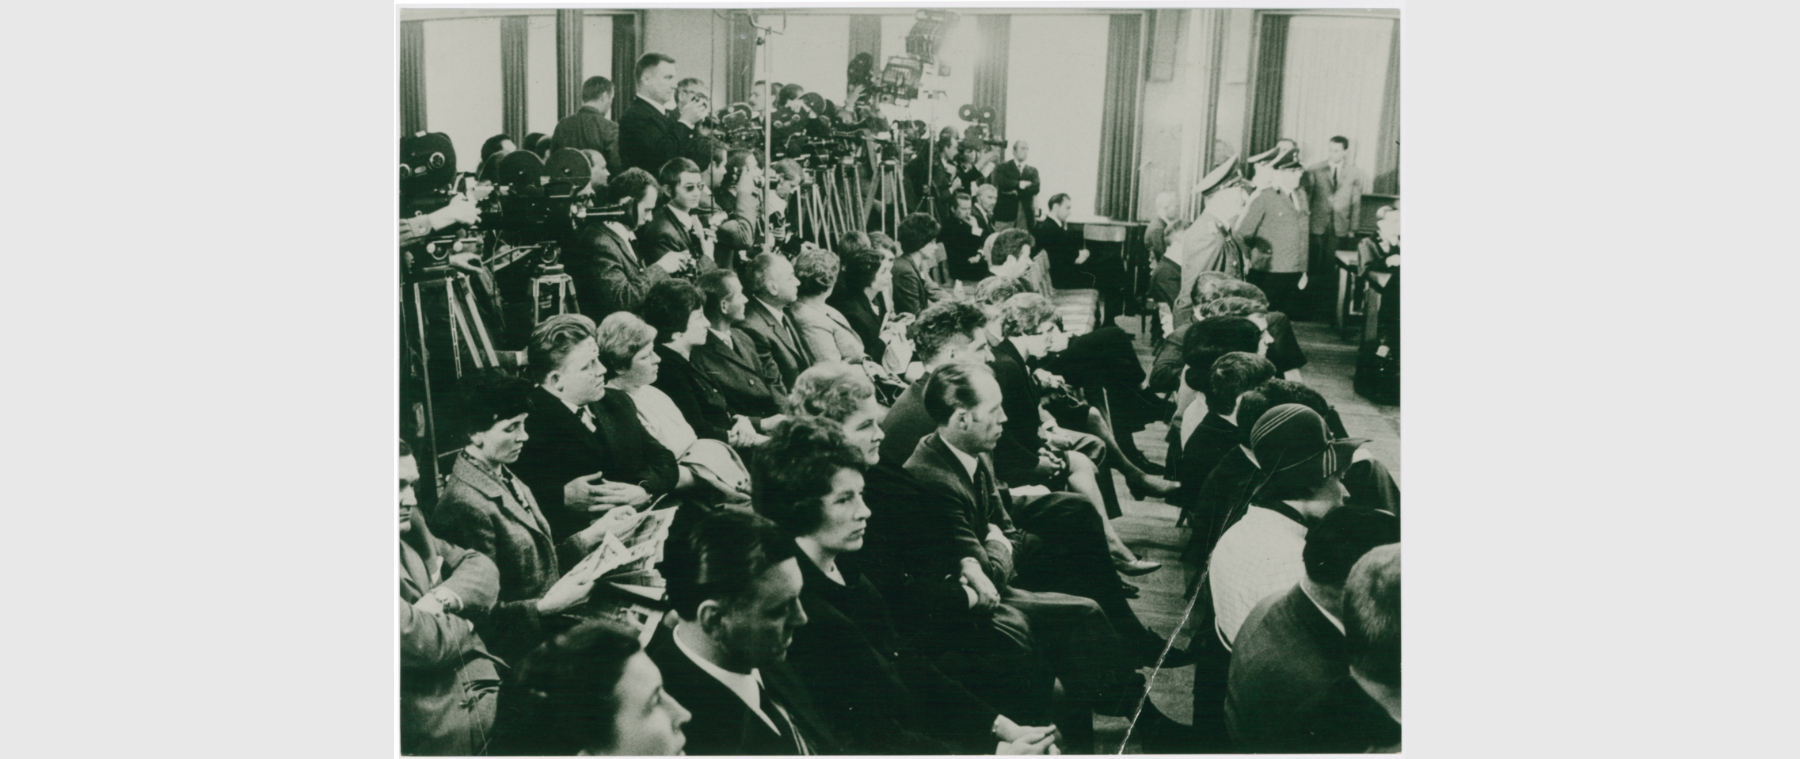 The photo shows attendees following the thalidomide trials in the great criminal court of Aachen. Picture taken around 1968.